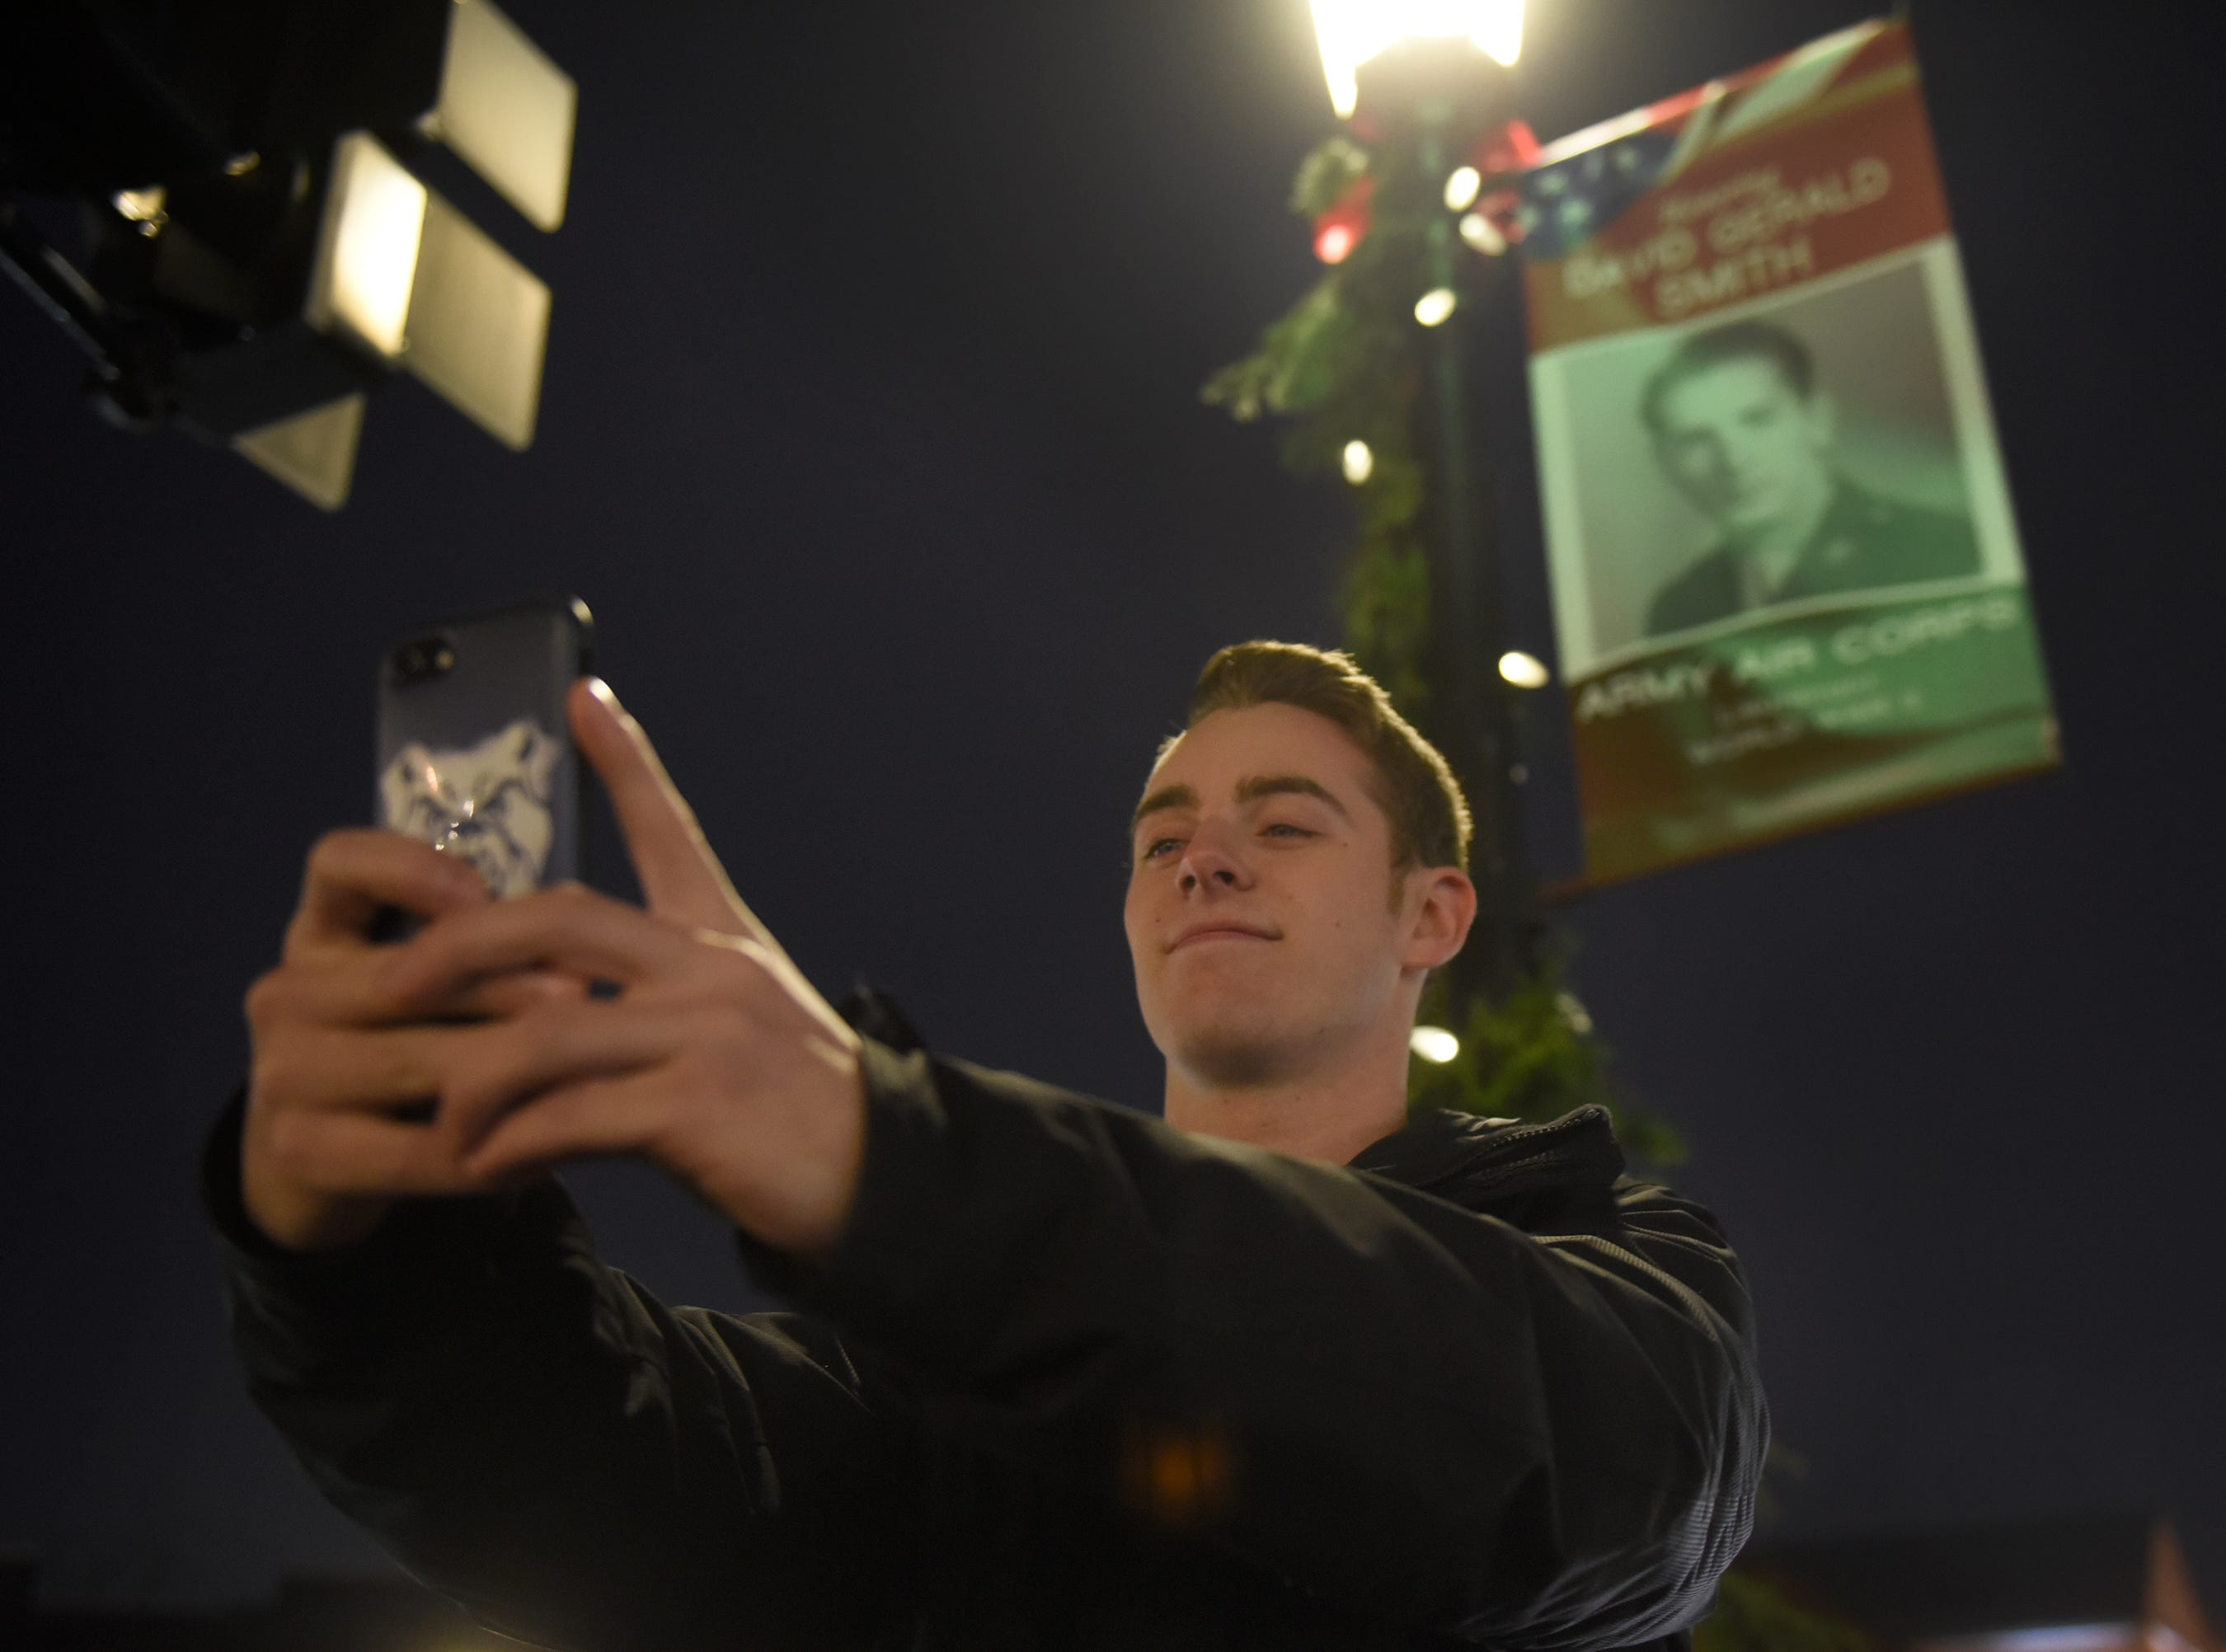 Connor Lepish takes a selfie in front of a banner on Main Street featuring his grandfather before the start of the Holiday Lighted Parade in downtown Northville, Nov. 16, 2018.